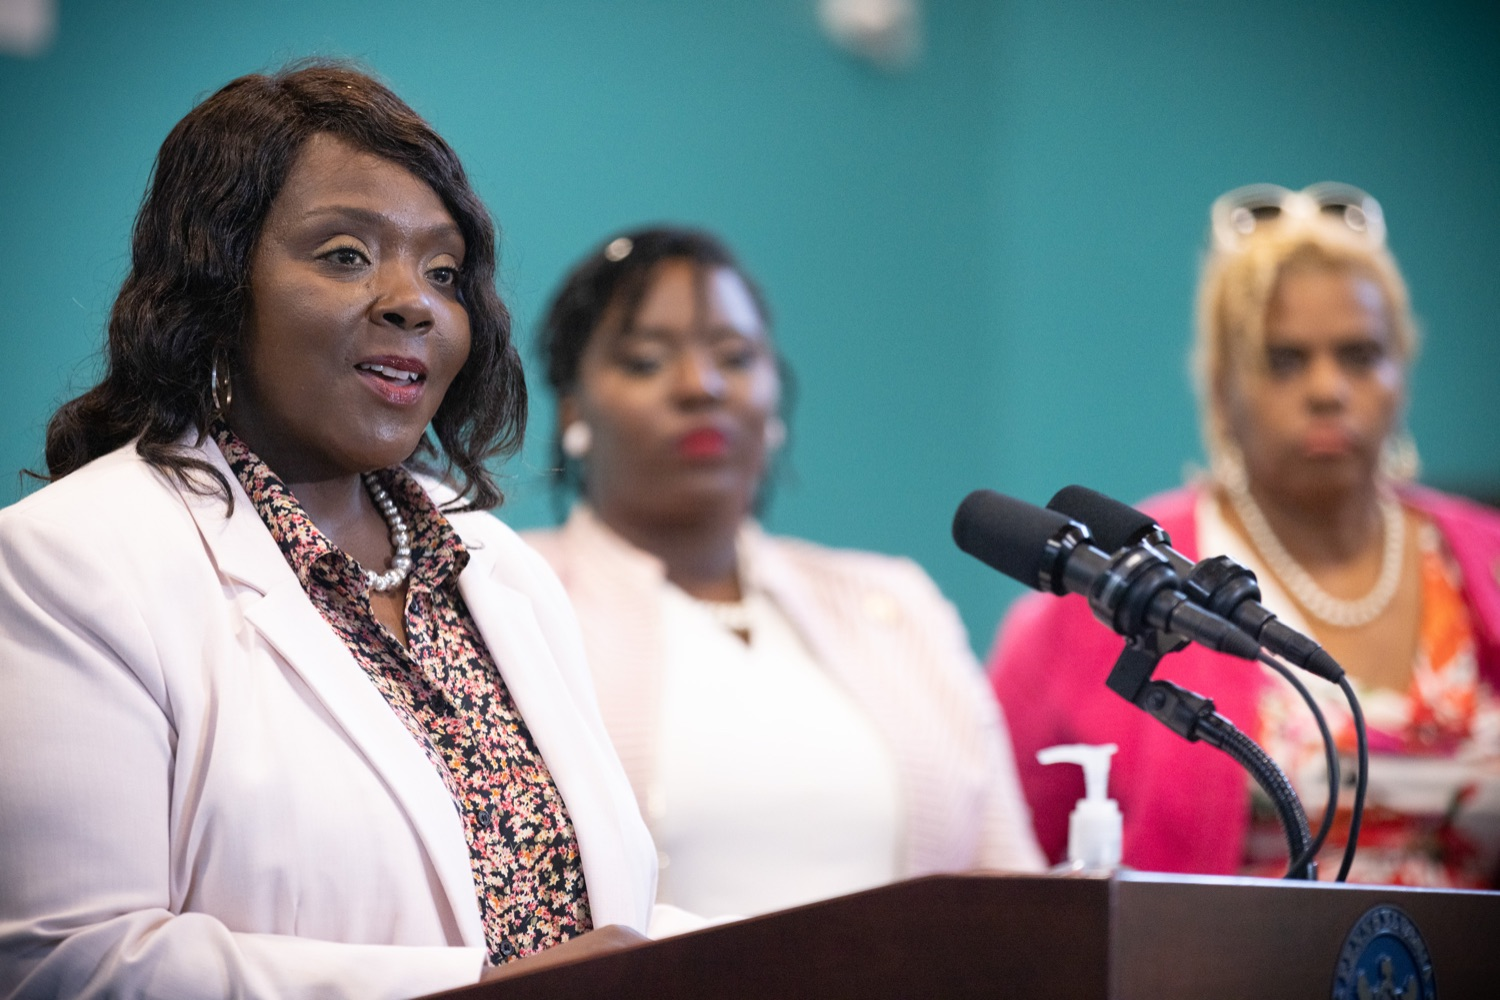 """<a href=""""https://filesource.wostreaming.net/commonwealthofpa/photo/18815_gov_voterRights_dz_004.jpg"""" target=""""_blank"""">⇣Download Photo<br></a>Acting Secretary of the Commonwealth Veronica Degraffenreid, speaking with the press.  With some politicians spreading lies about our elections to divide us, Governor Tom Wolf today vowed to protect the freedom to vote and oppose legislation that would create barriers to voting and silence the voices of some Pennsylvanians. These are the same lies that led directly to the appalling assault on our U.S. Capitol and our democracy on January 6, and now, just a few short months later, the same people who fomented, encouraged, and joined that mob are again emerging to undermine the fabric of our nation.   Harrisburg, PA  June 9, 2021"""